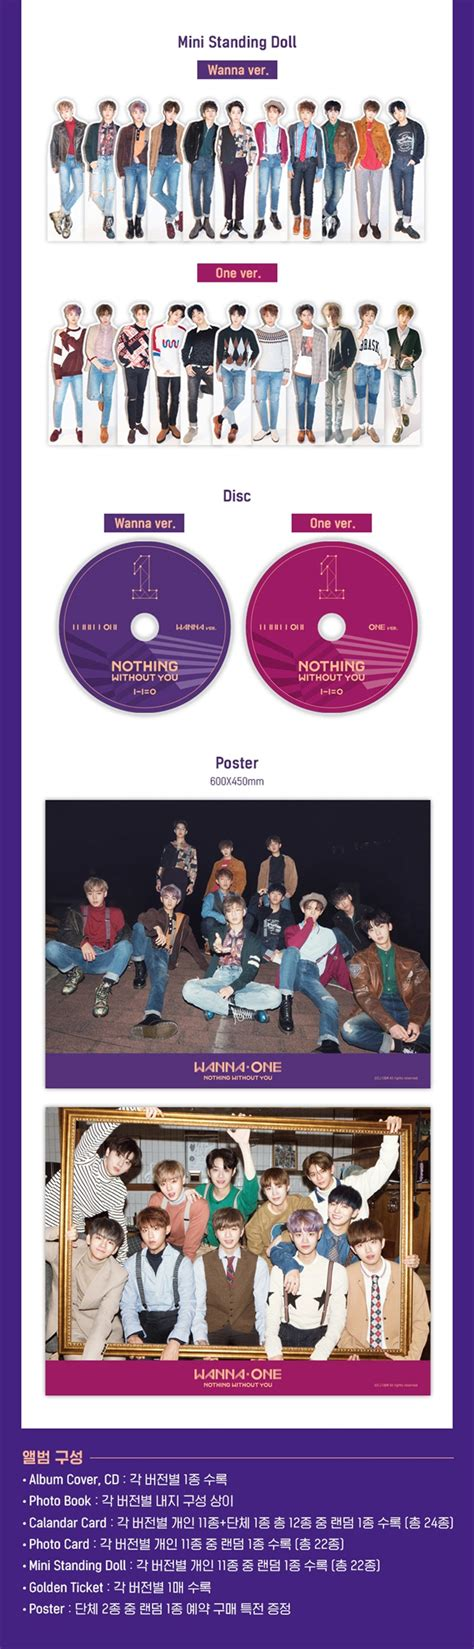 Wanna One Album Nothing Without You Wanna Versi wanna one 1st mini album prequel repackage to be one nothing without you cd one ver poster